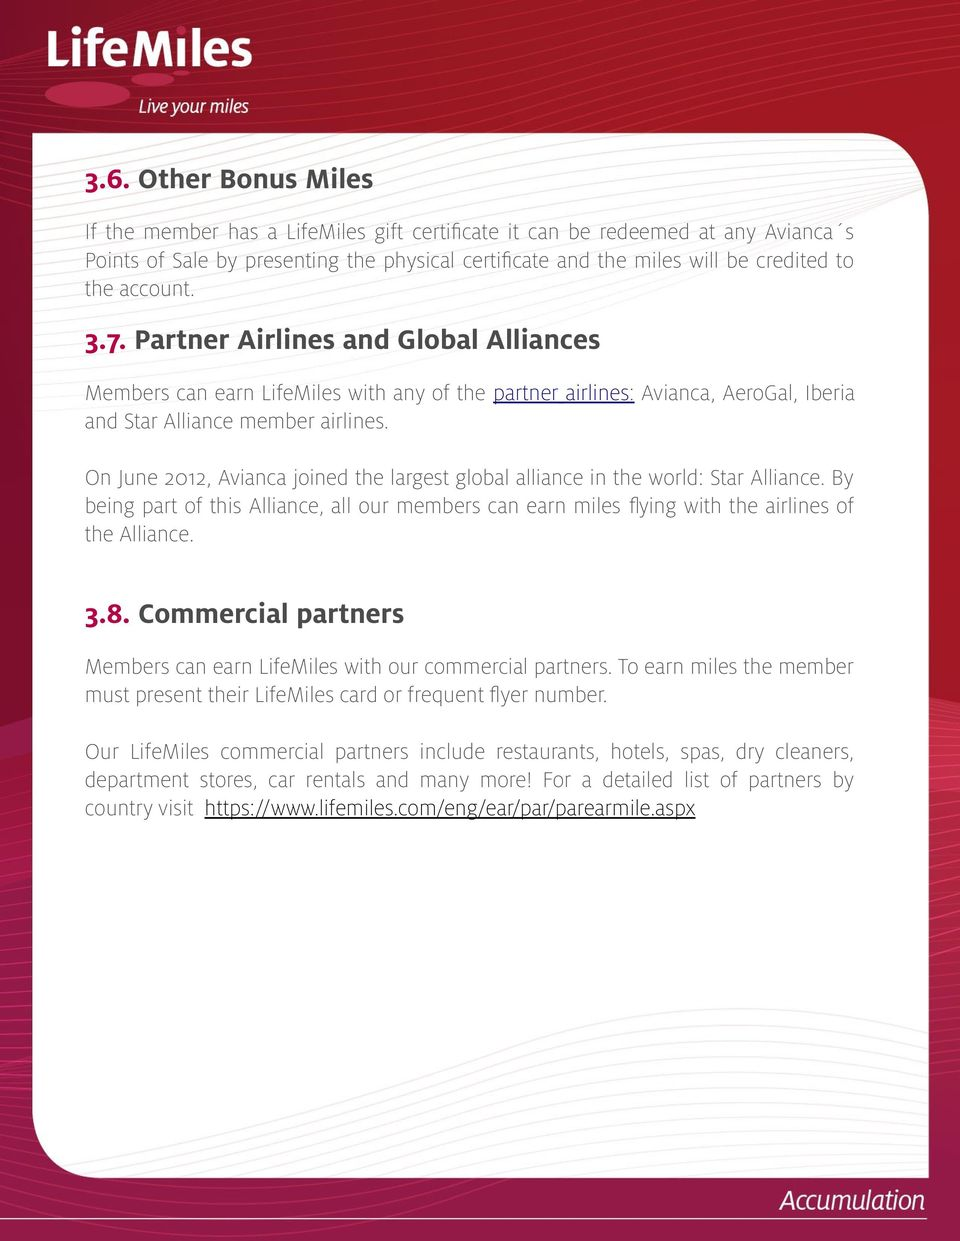 On June 2012, Avianca joined the largest global alliance in the world: Star Alliance. By being part of this Alliance, all our members can earn miles fying with the airlines of the Alliance. 3.8.